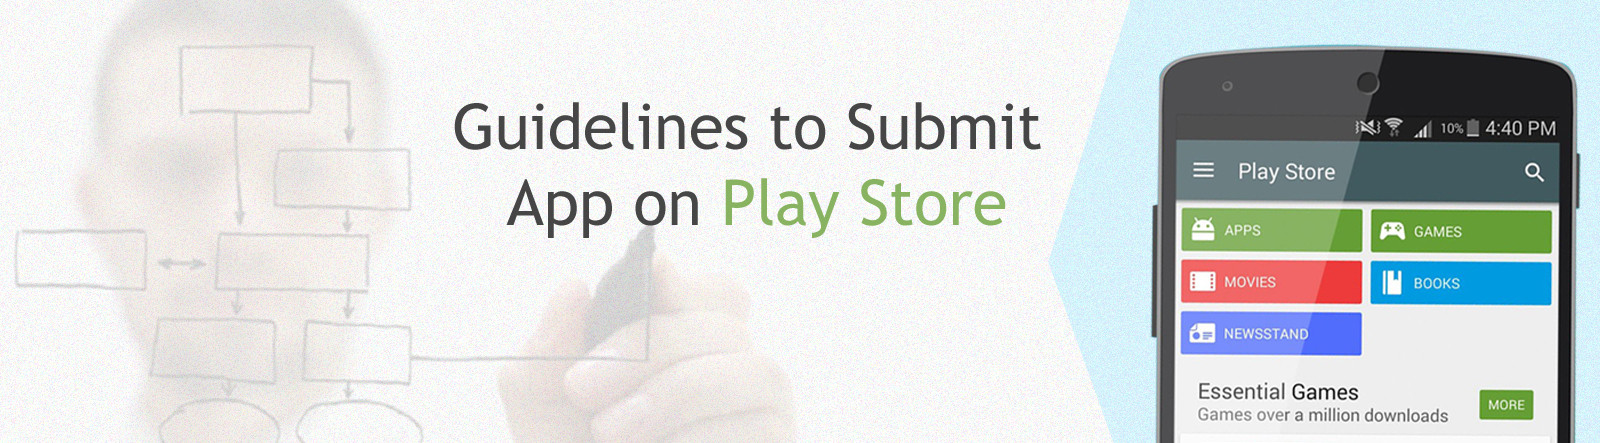 App Submission to Google Play Store – Tips and Guideline to Follow